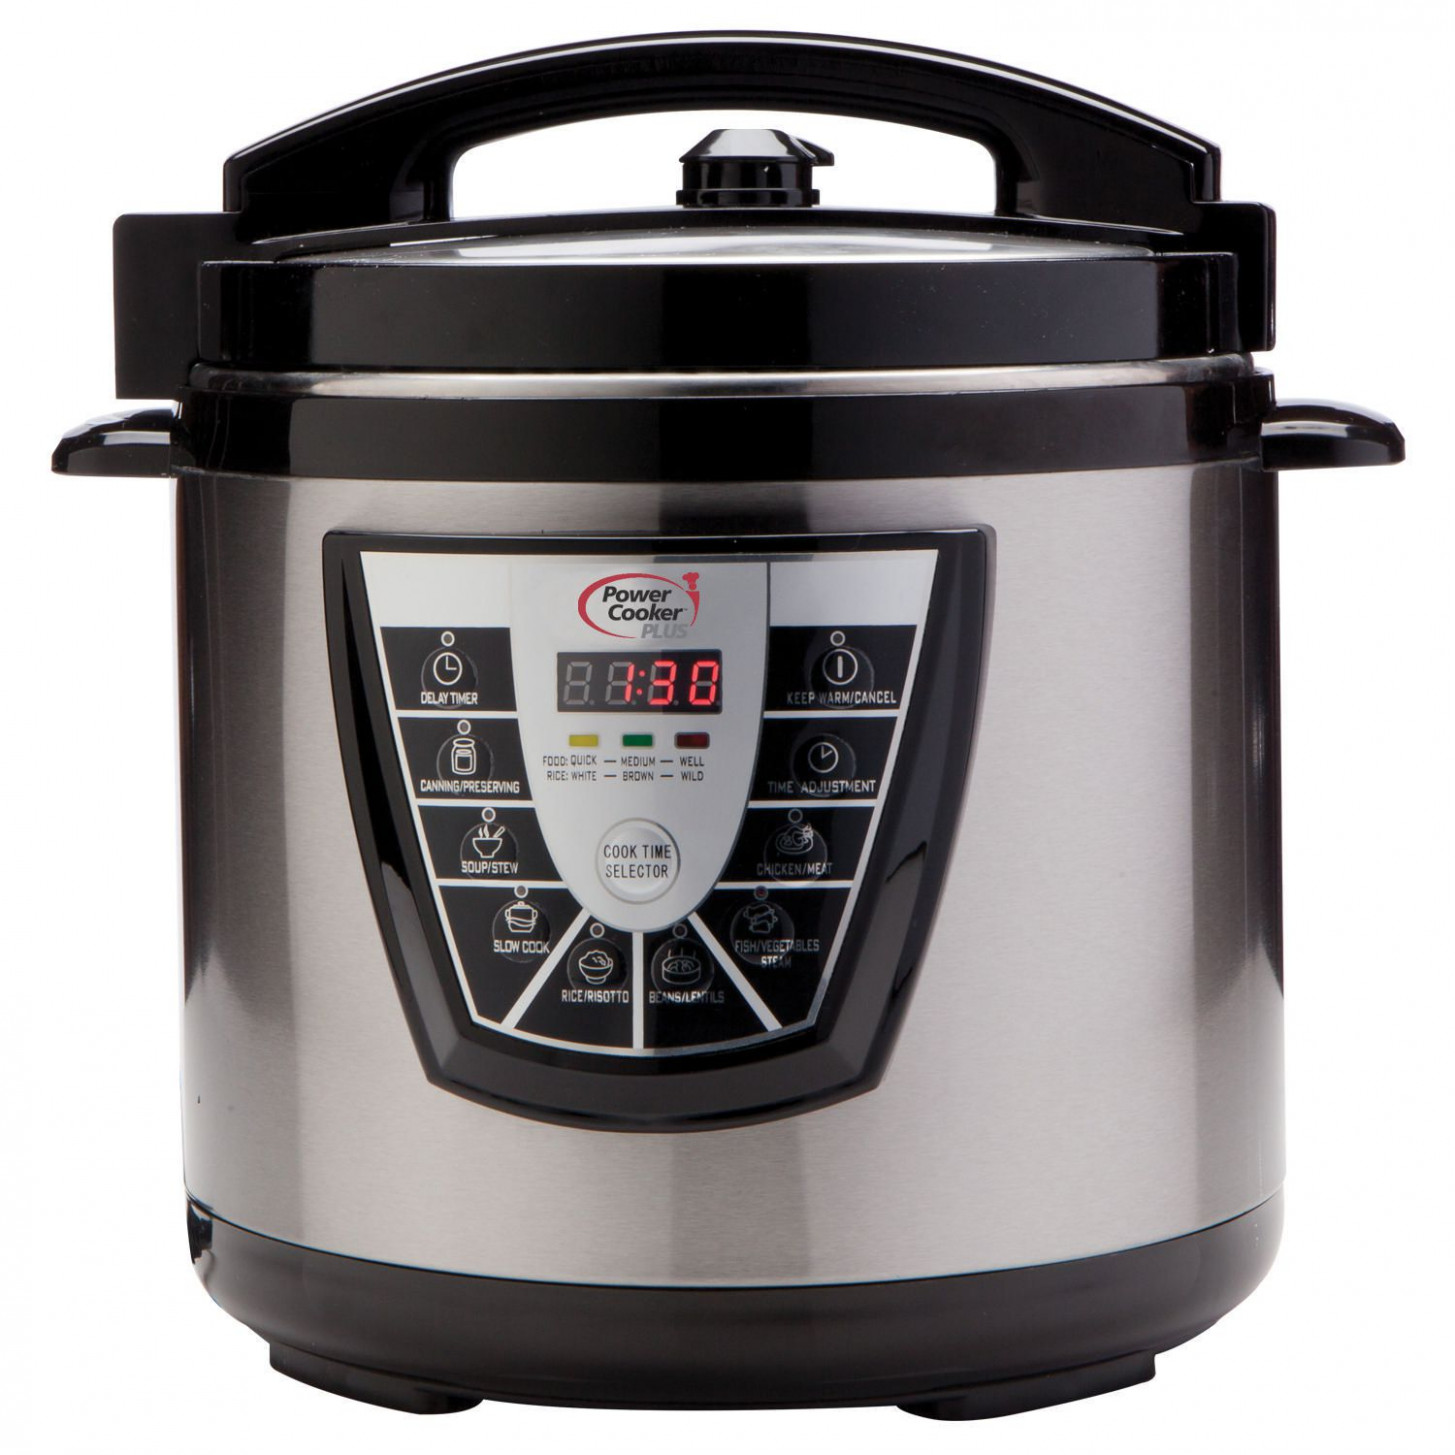 Power Cooker plus Pressure Cooker - power pressure cooker xl healthy recipes